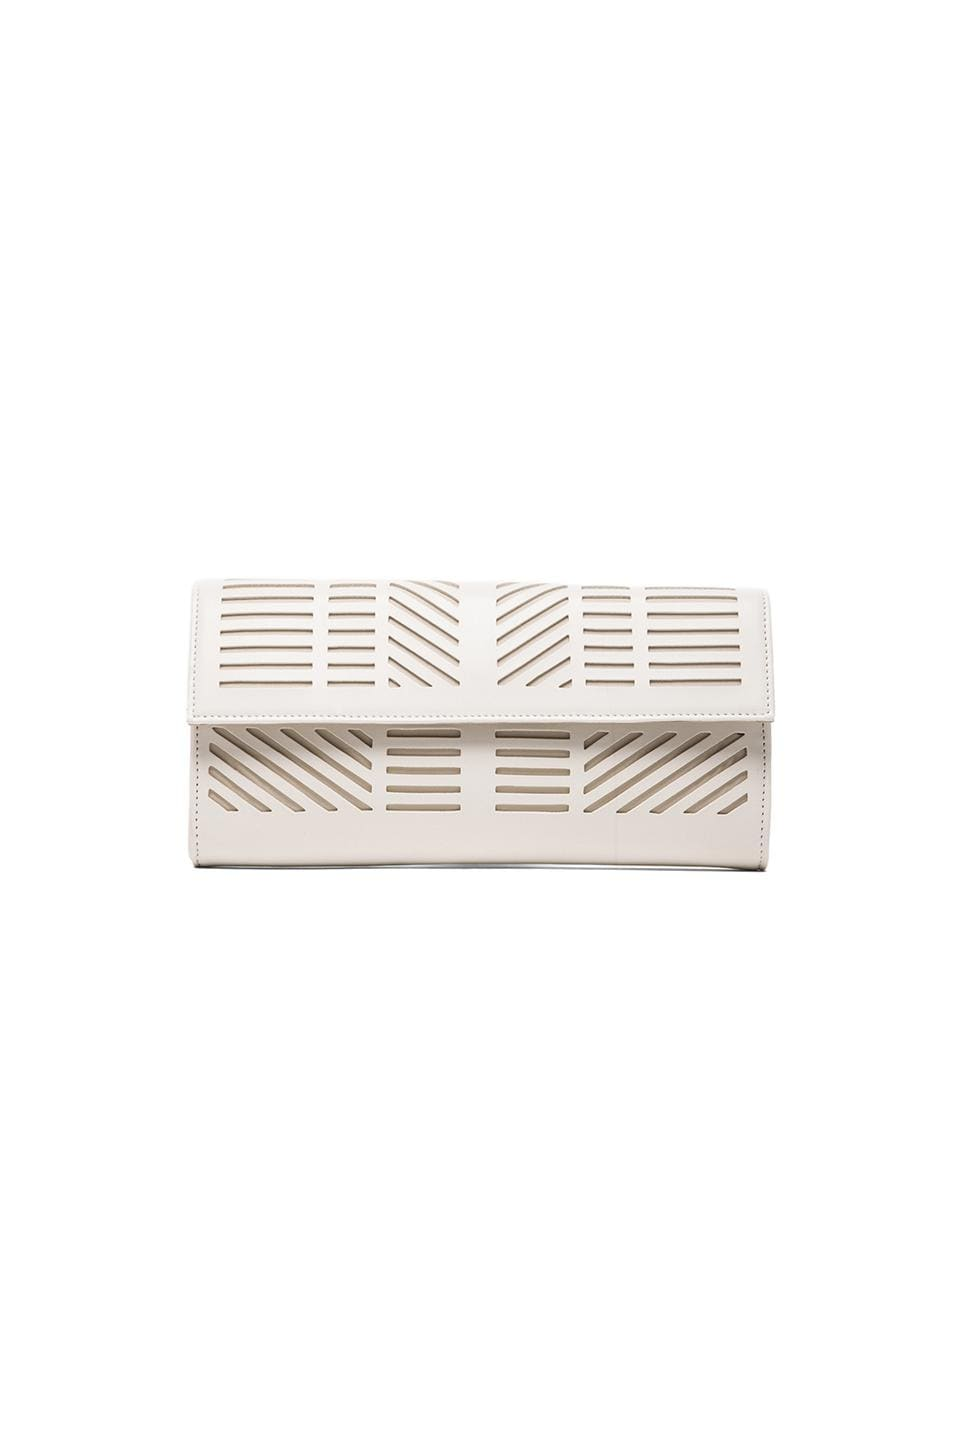 BCBGMAXAZRIA Geometric Pef Clutch in White